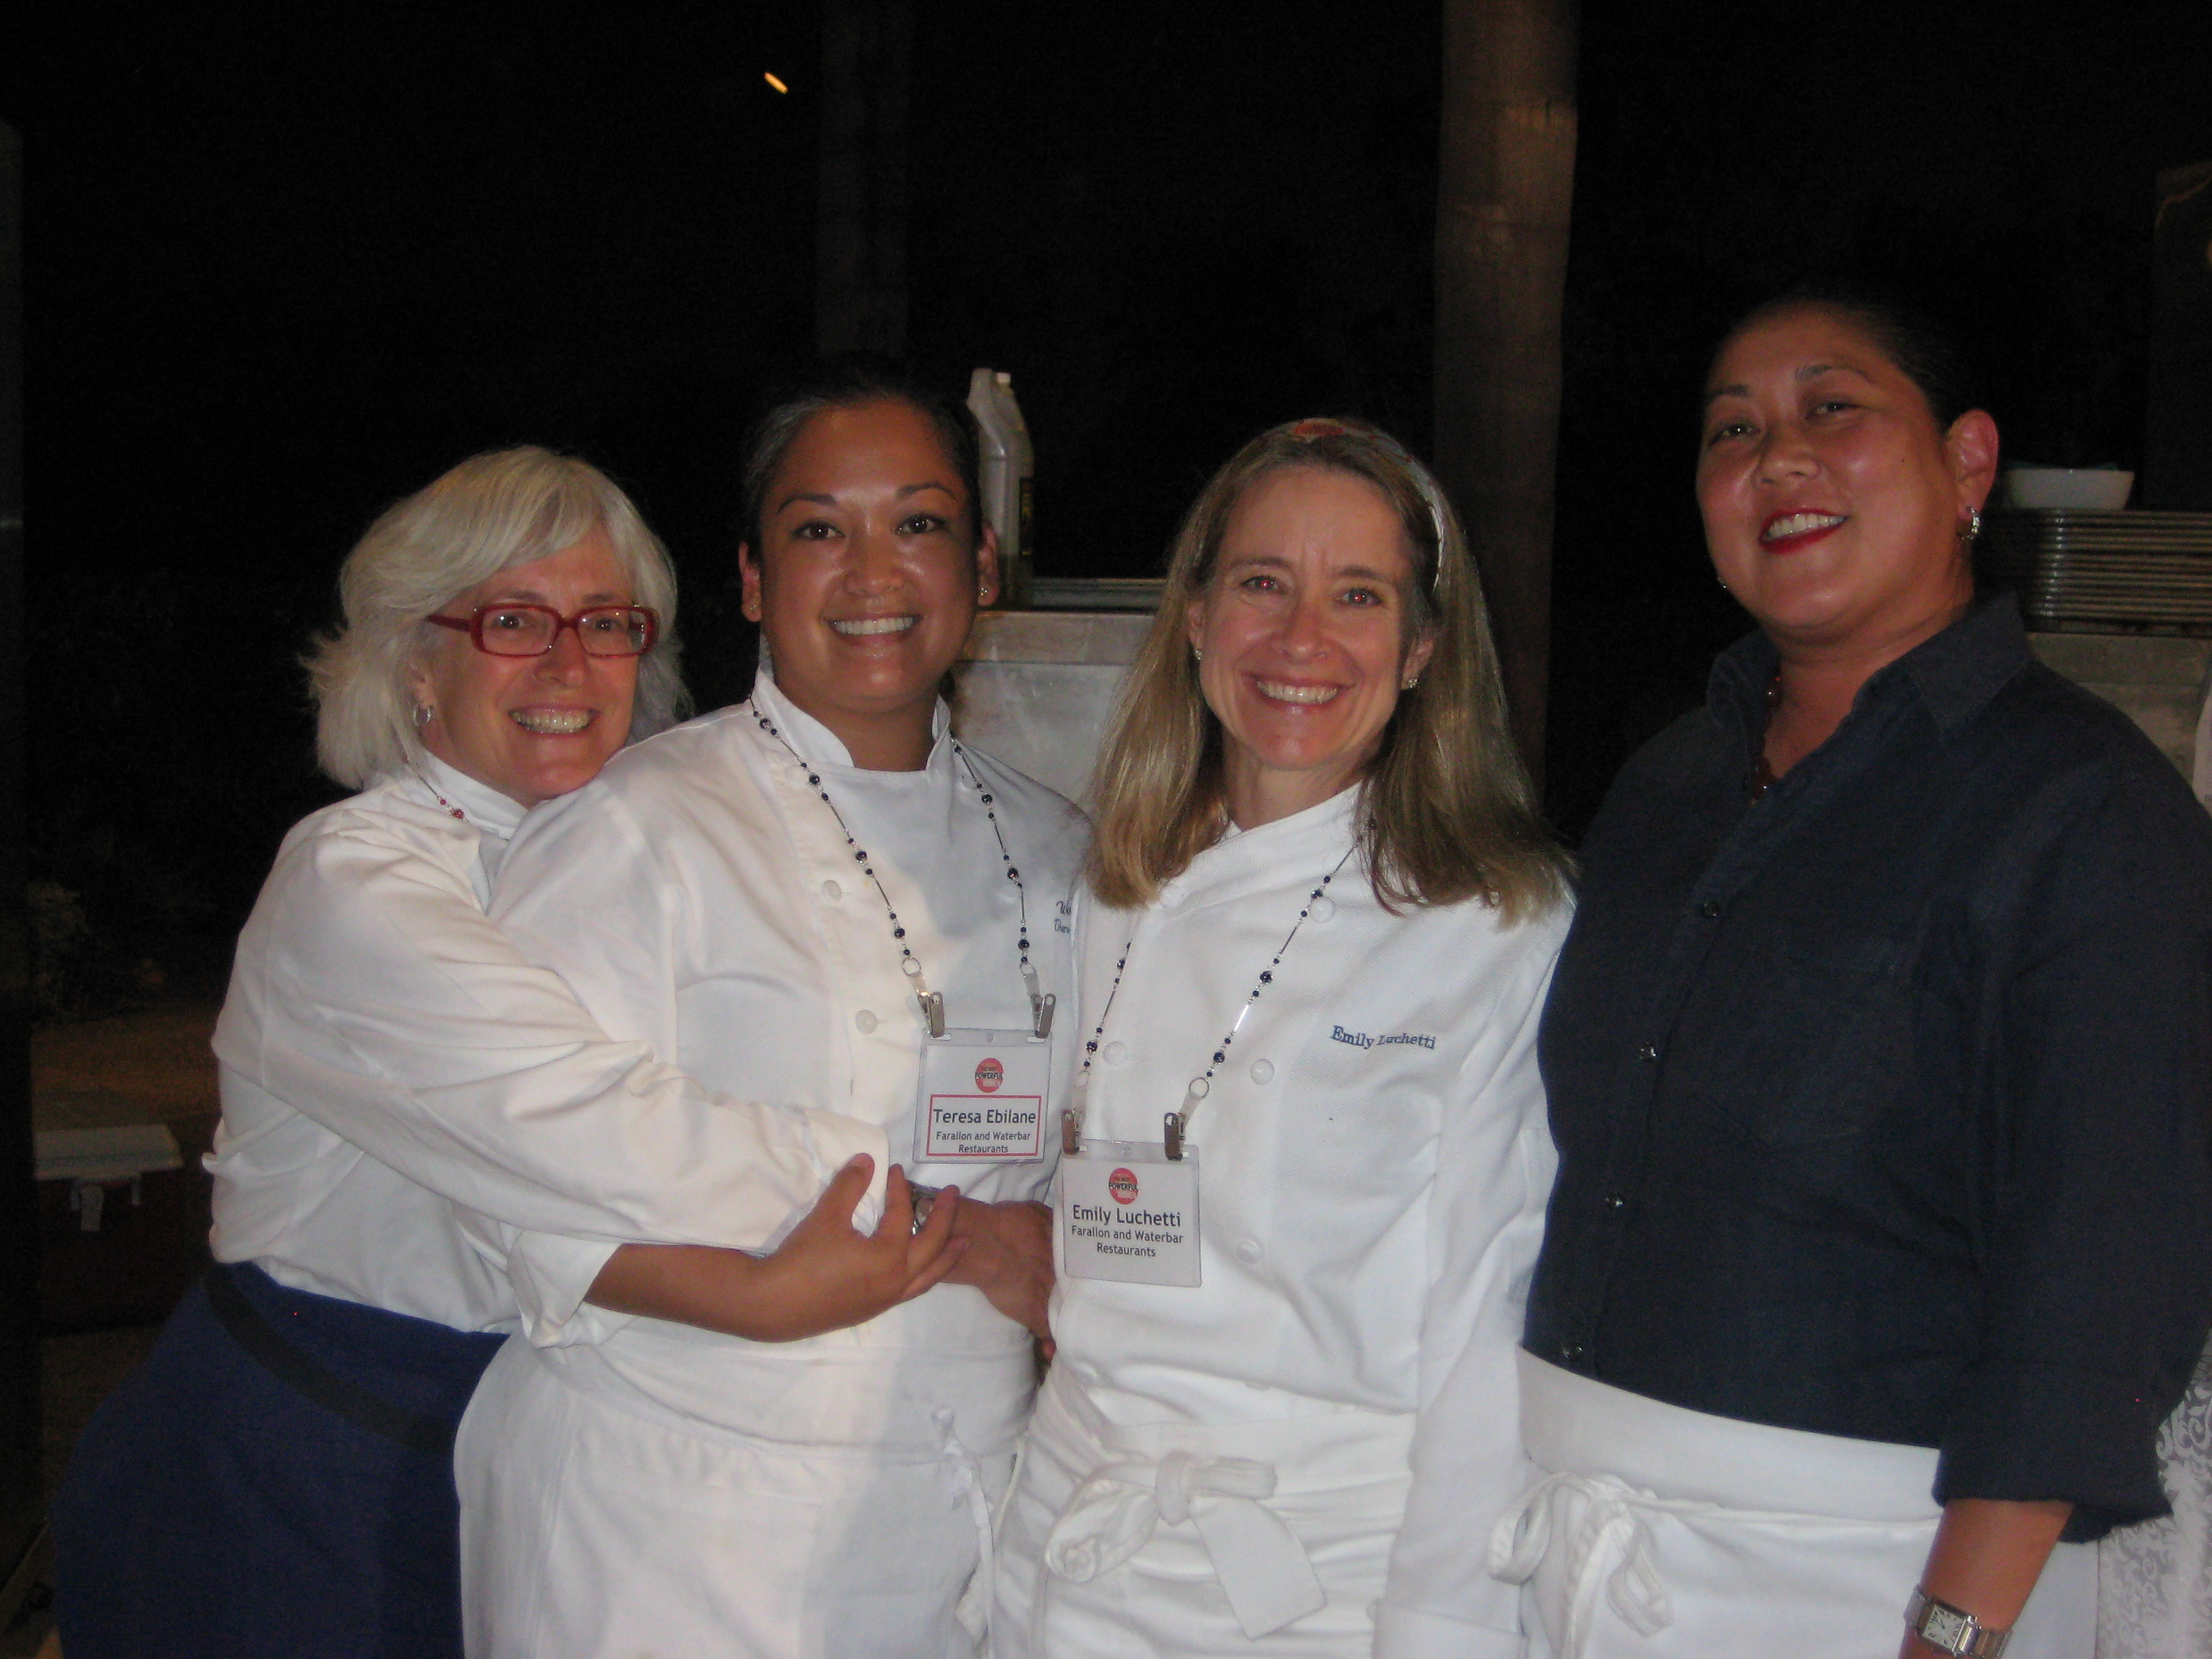 Cindy, Theresa, Emily and Noreen